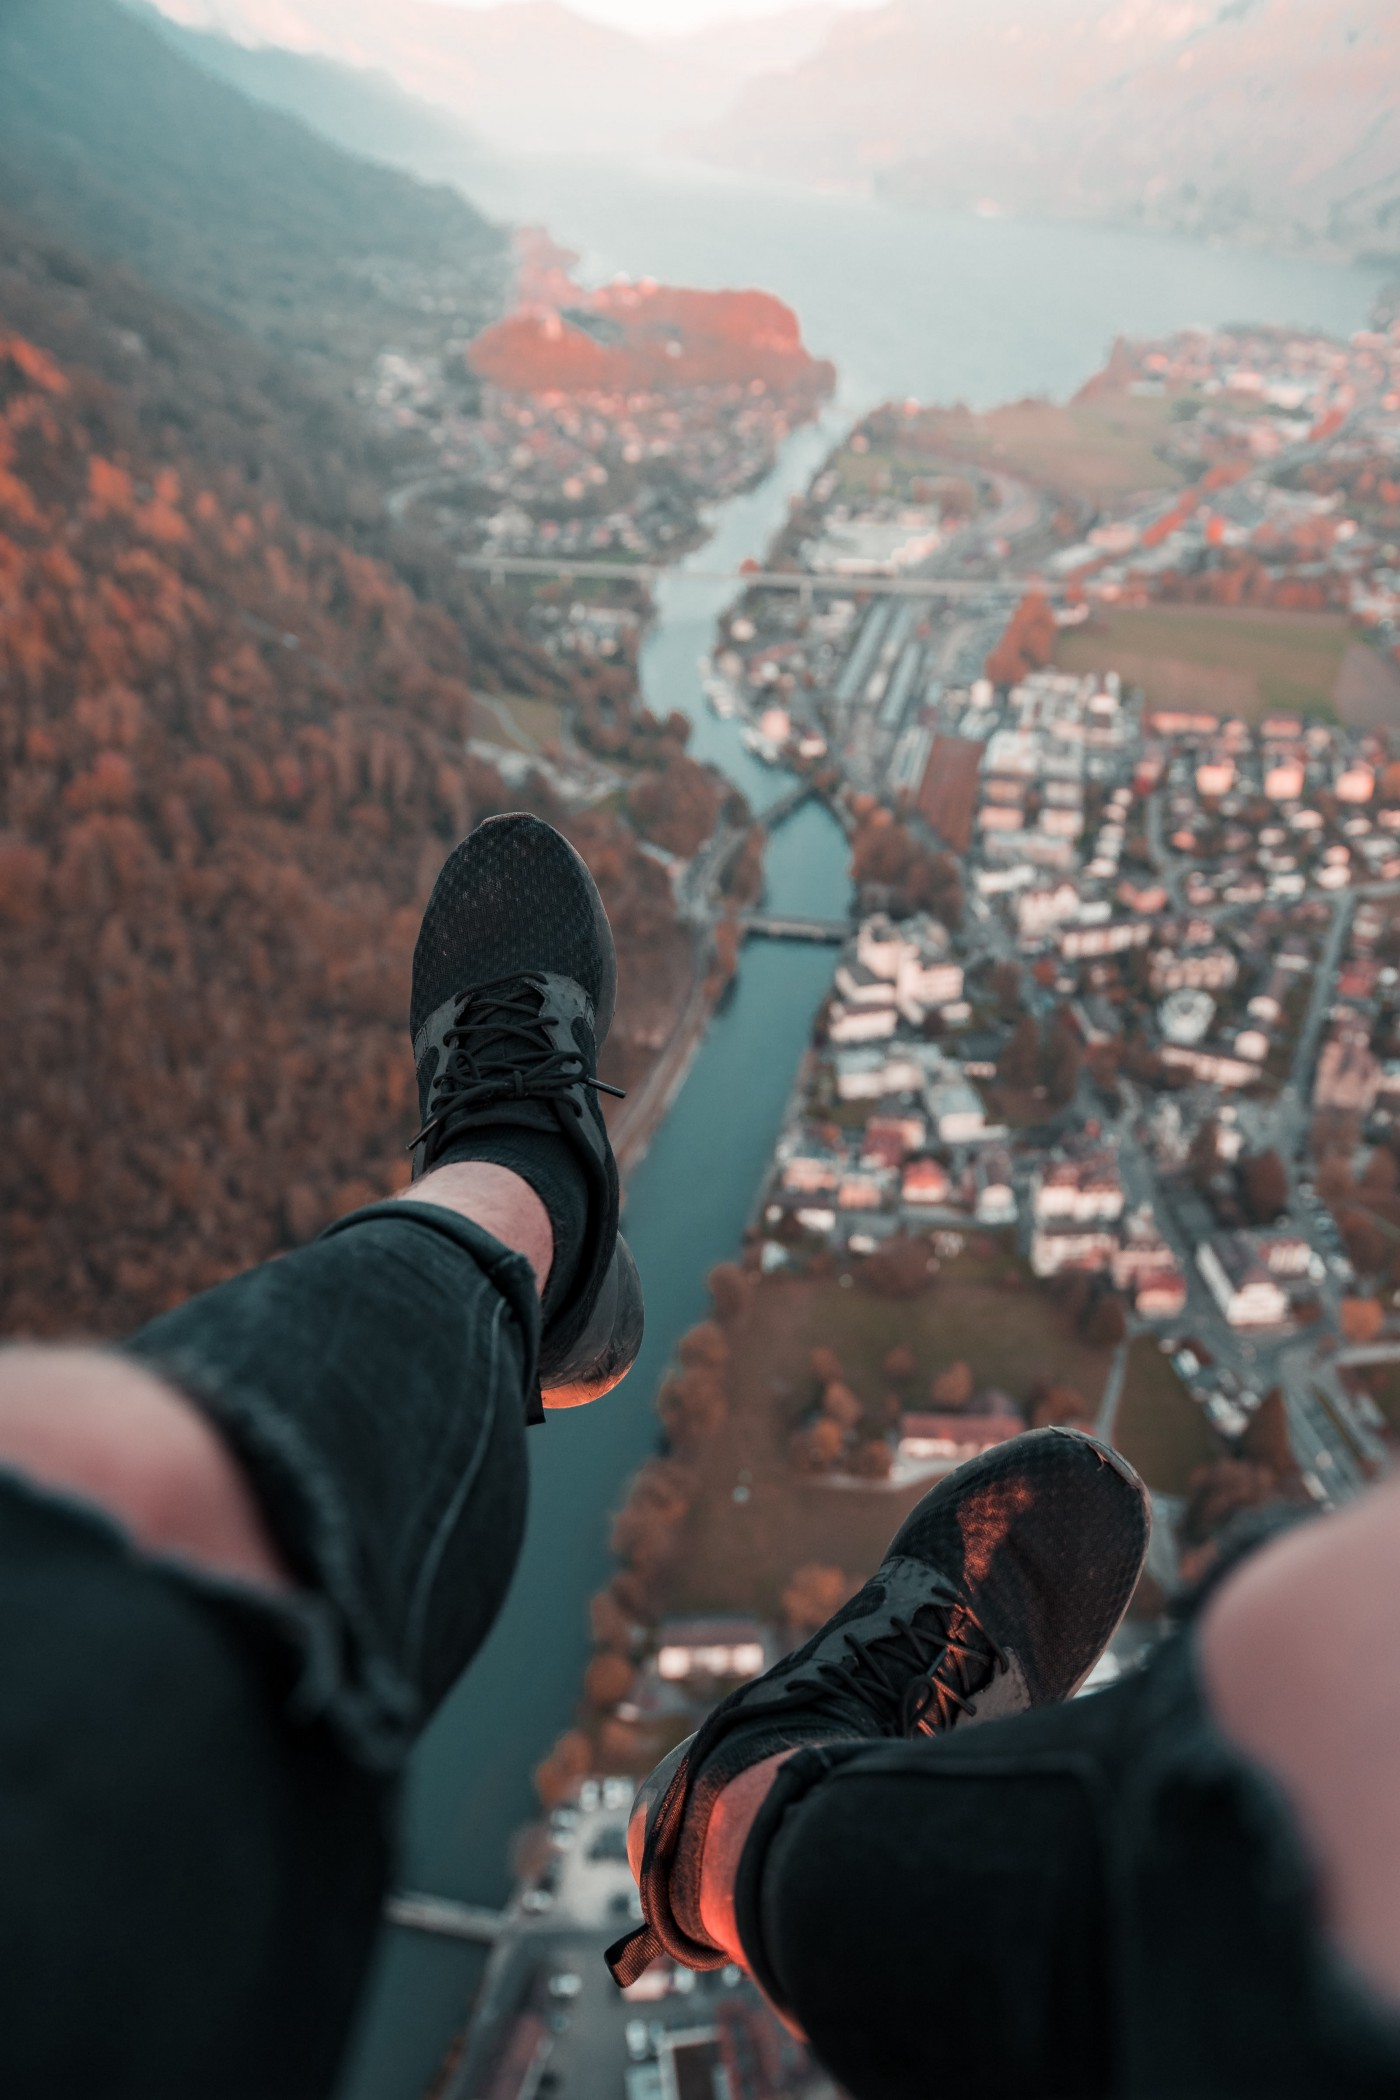 Man dangles feet over cliff looking down onto a city